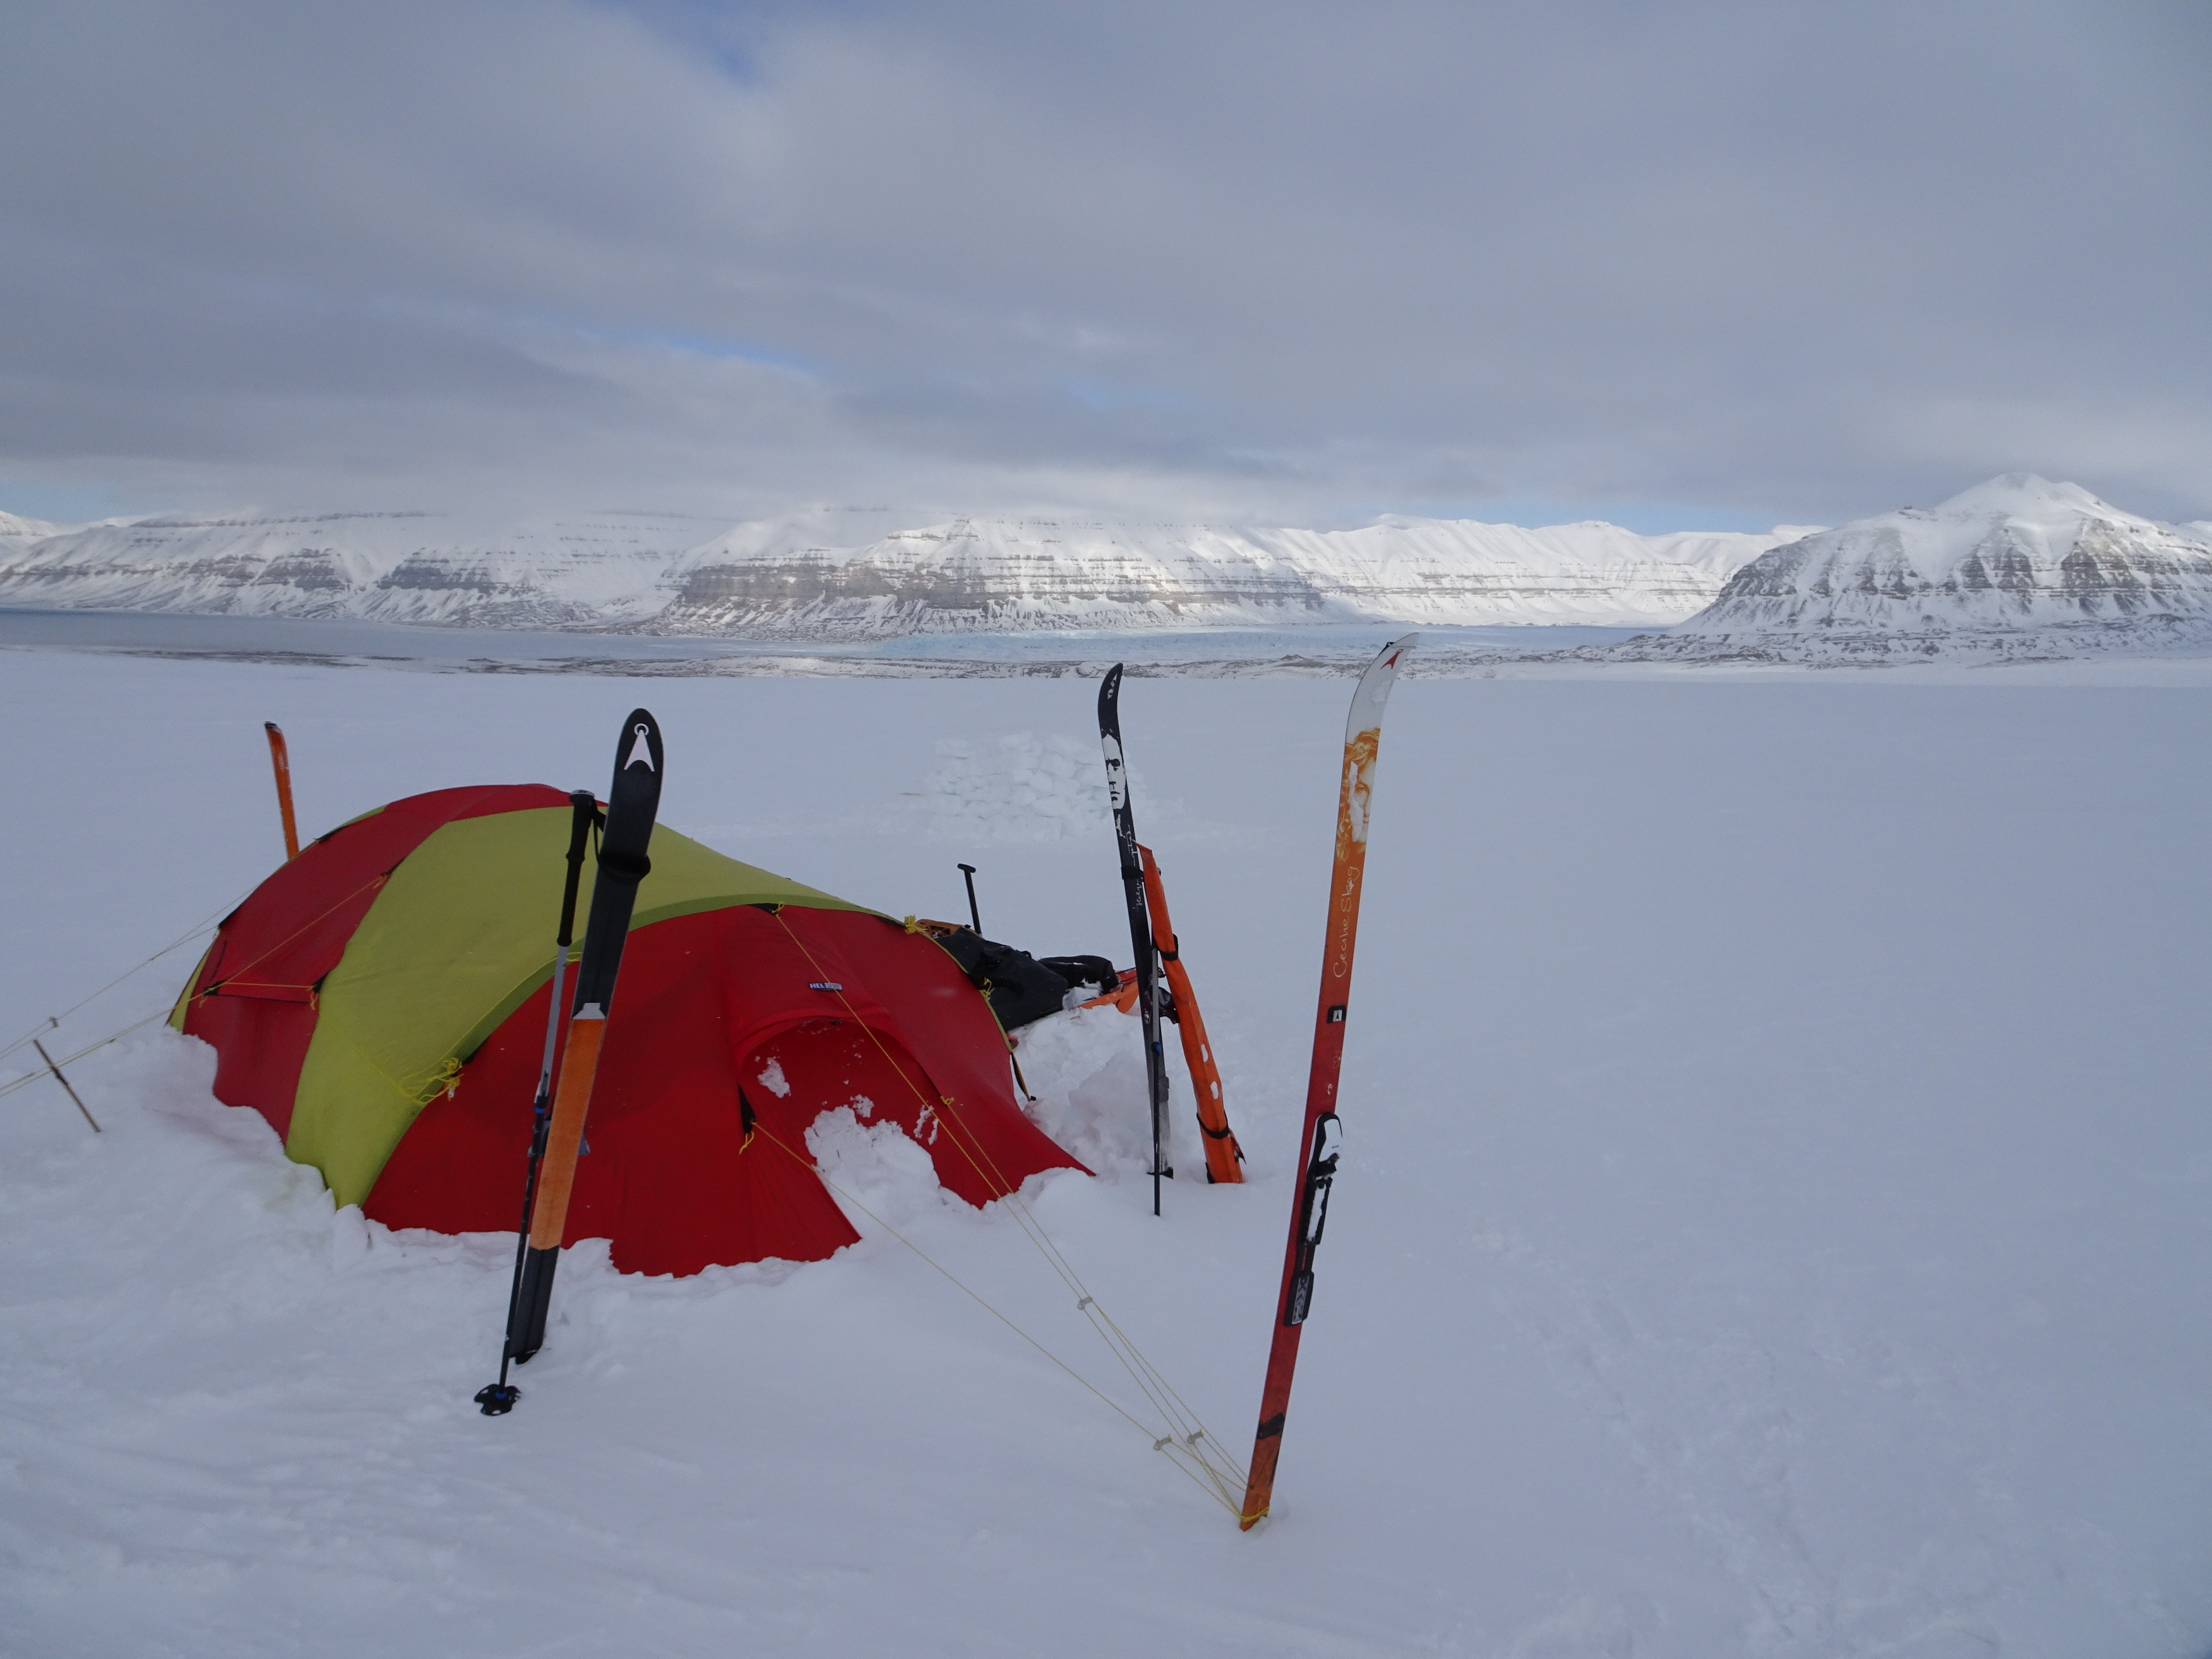 Using skis to anchor the tents | Photo: Justine Gosling